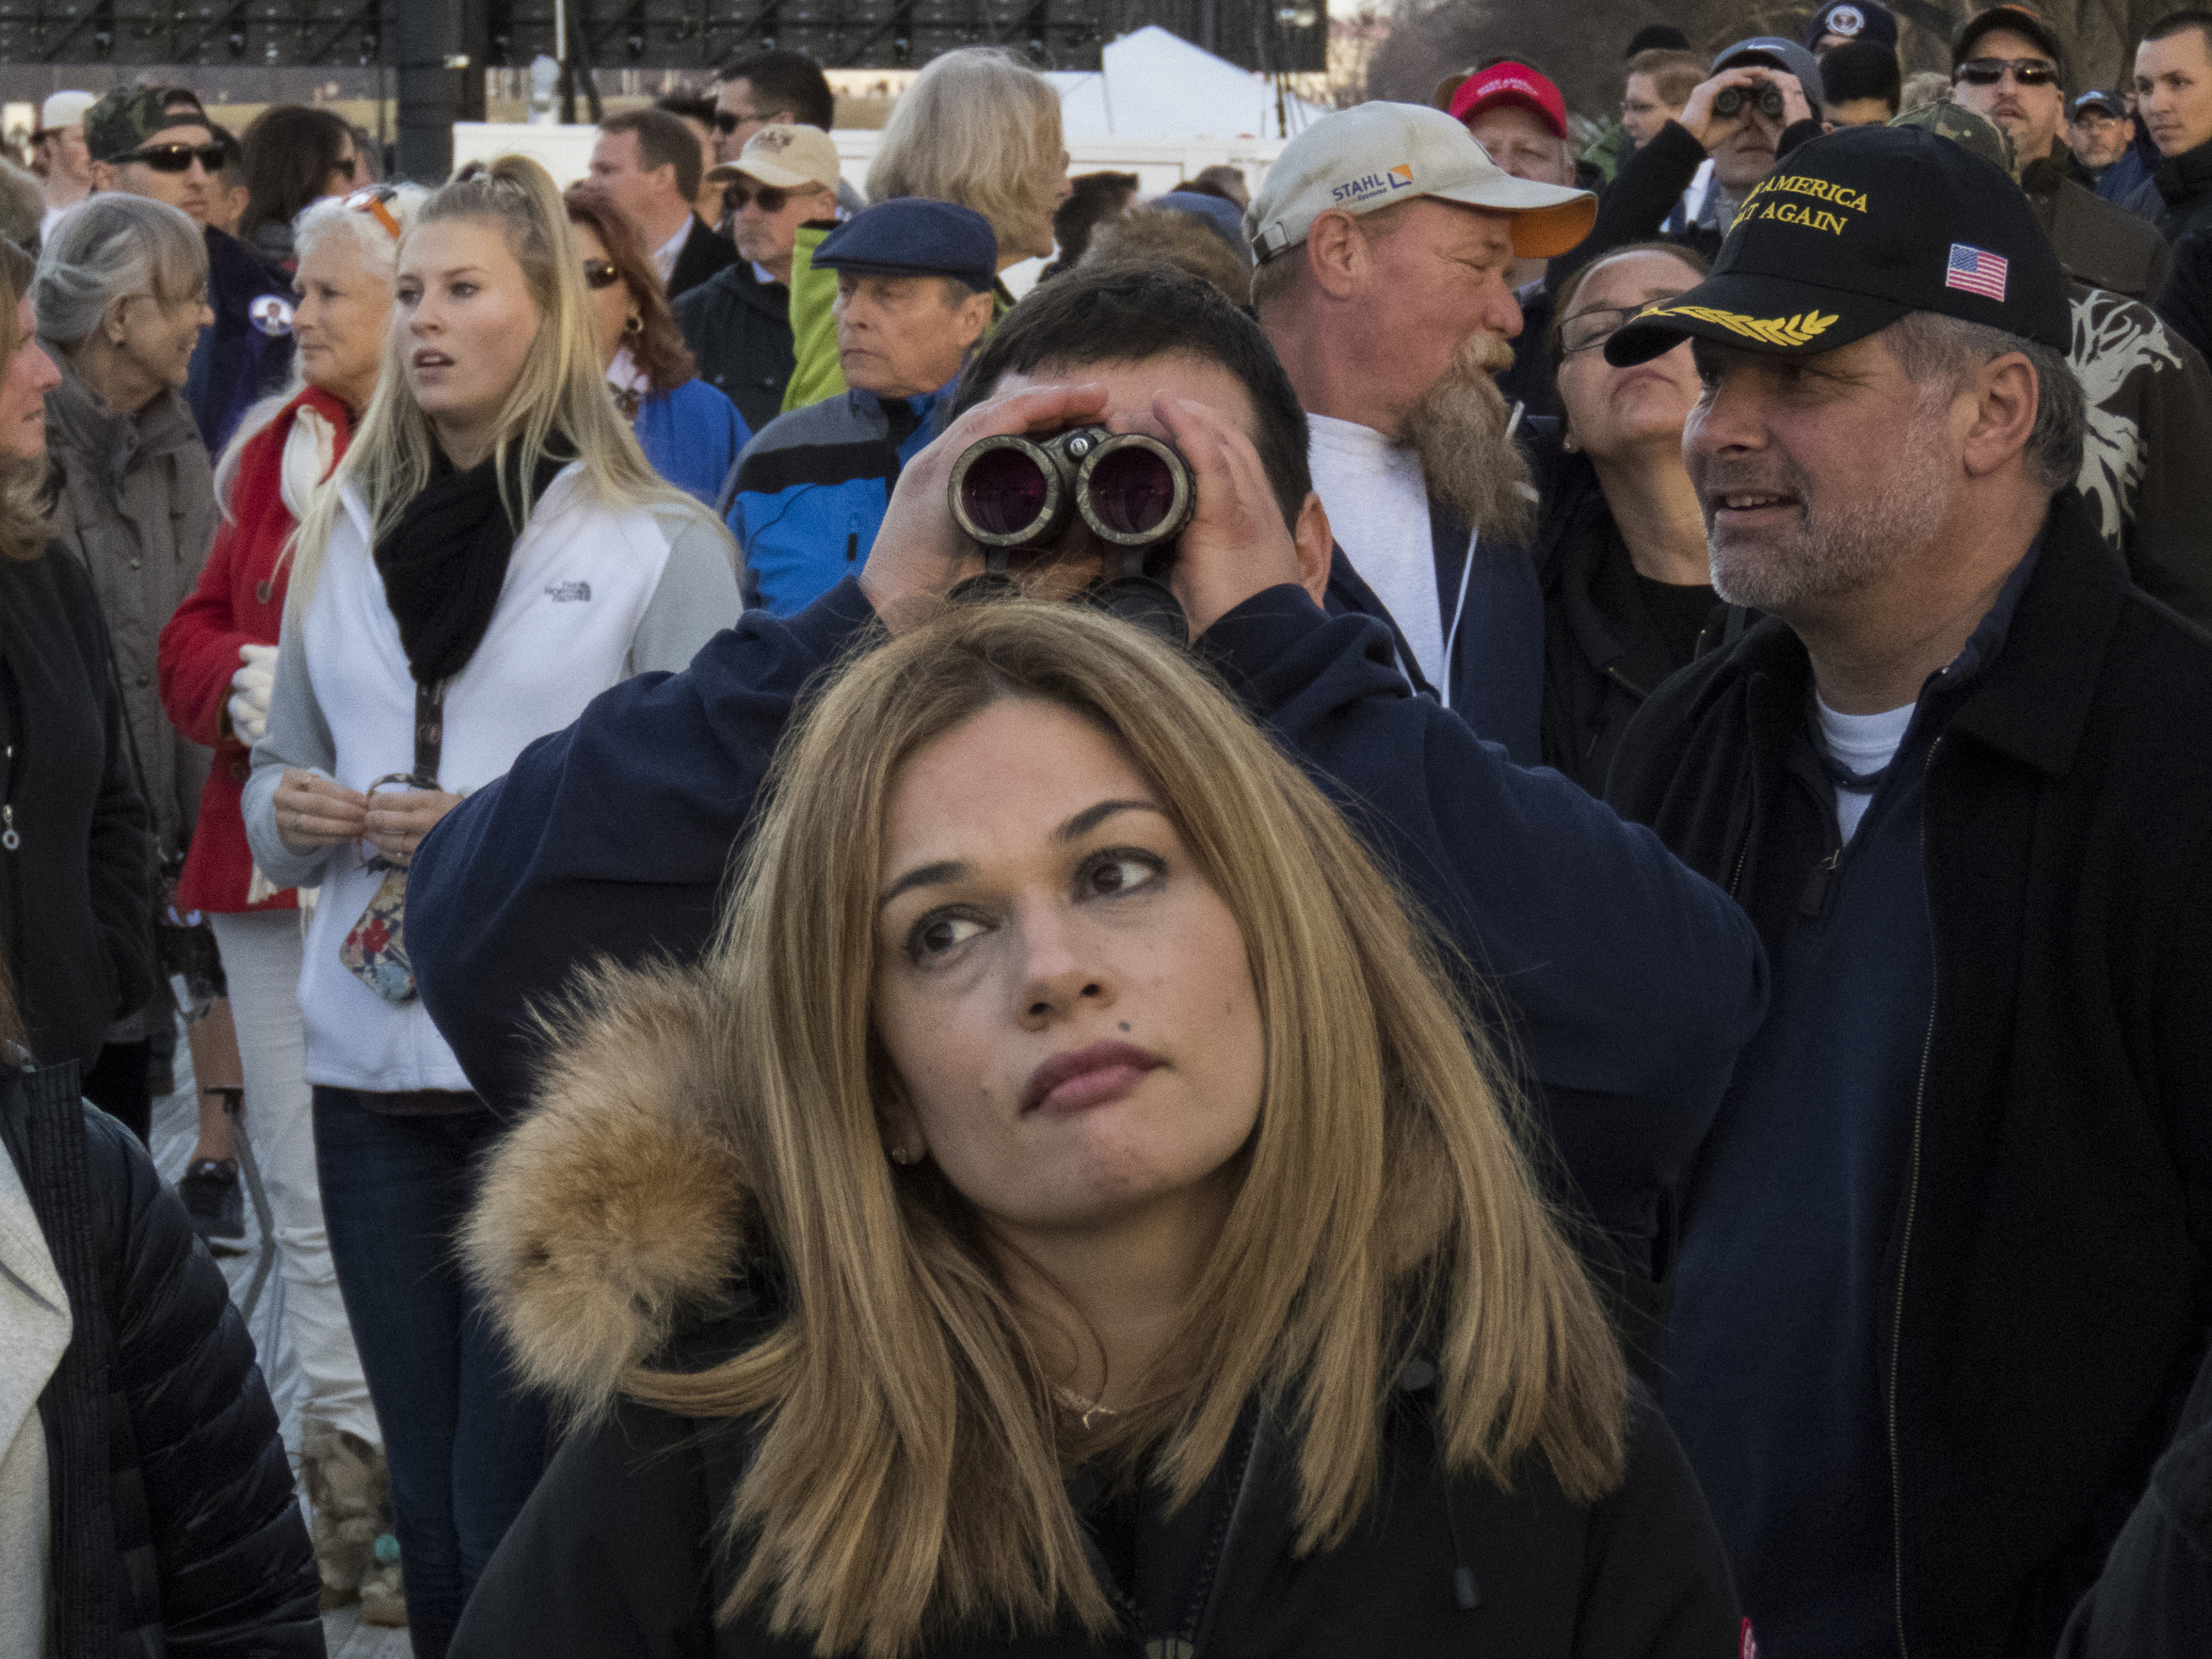 Attendees at the Voices of the People: Make America Great Again Welcome Concert at the Lincoln Memorial in Washington, D.C., on Thursday, Jan. 19, 2017.